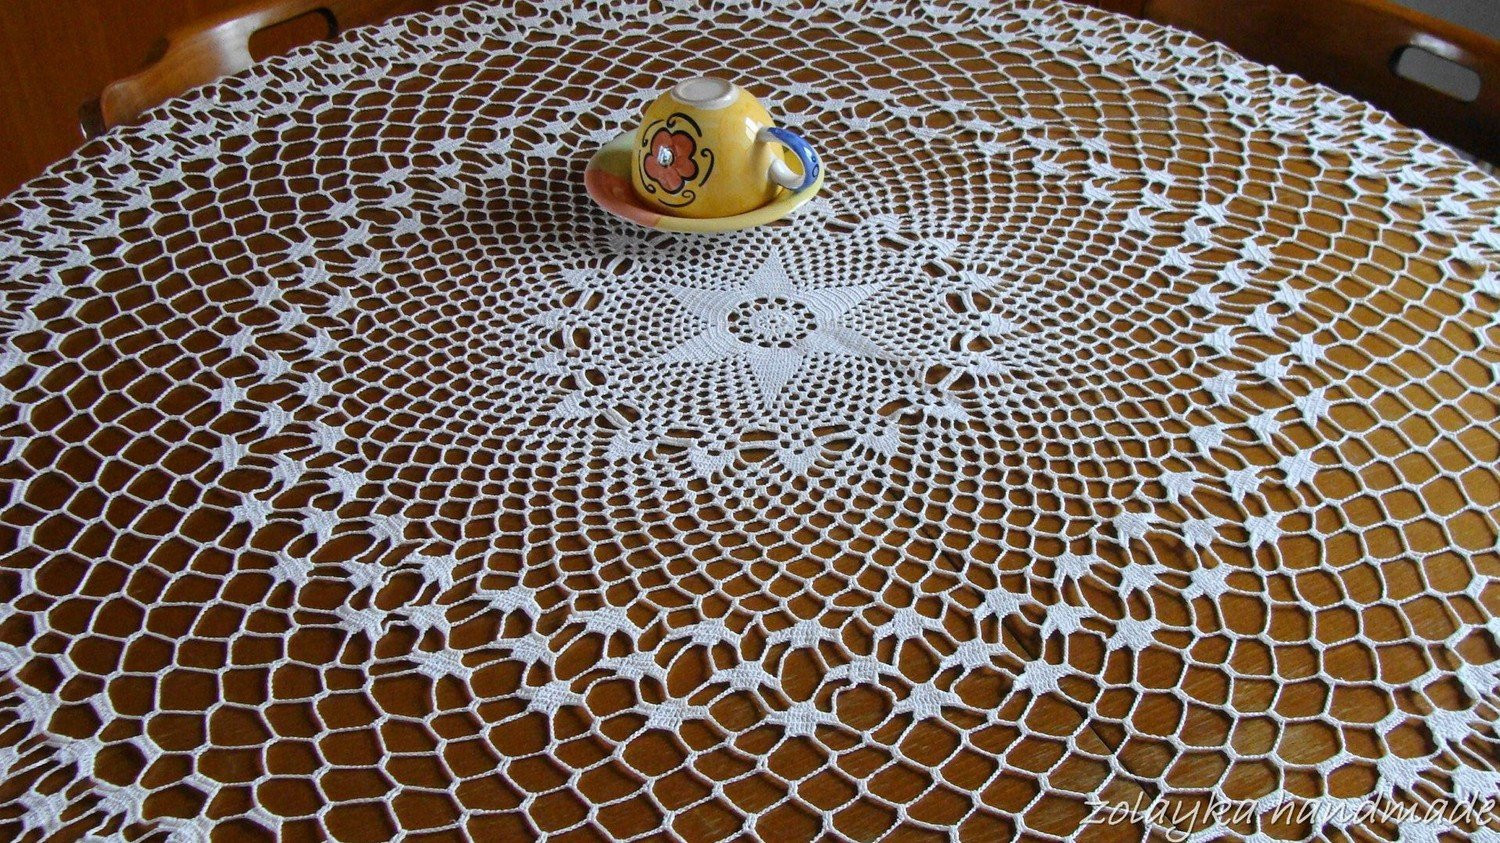 Crochet Round Tablecloth Best Of Crocheted Round Cotton Tablecloth Ceneterpice Of Beautiful 41 Pictures Crochet Round Tablecloth